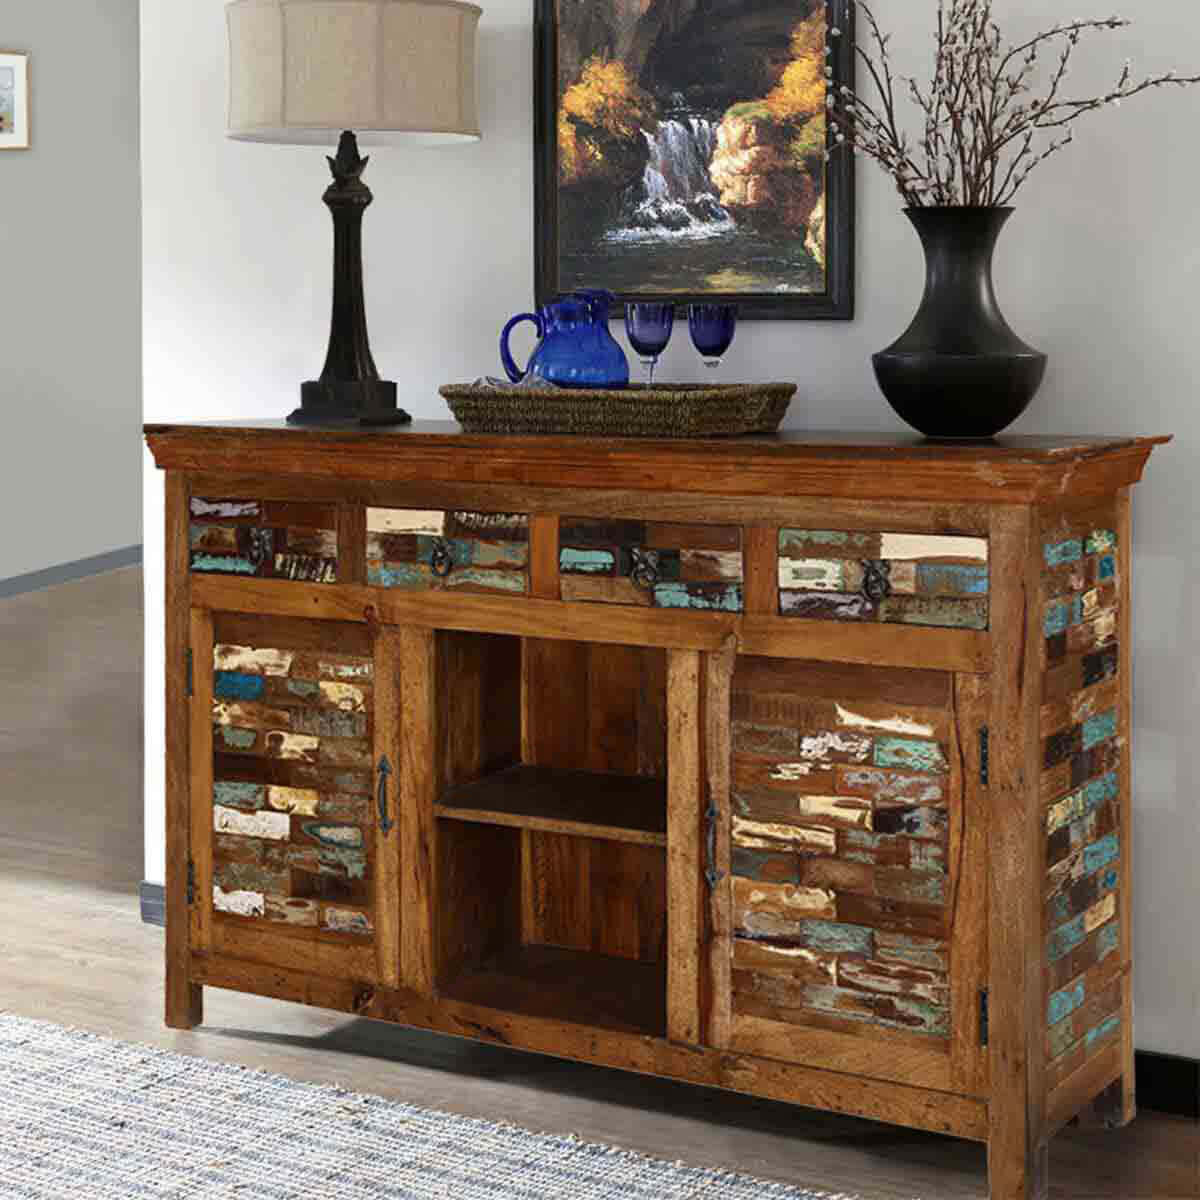 Tangier Mosaic Rustic Reclaimed Wood 4 Drawer Accent